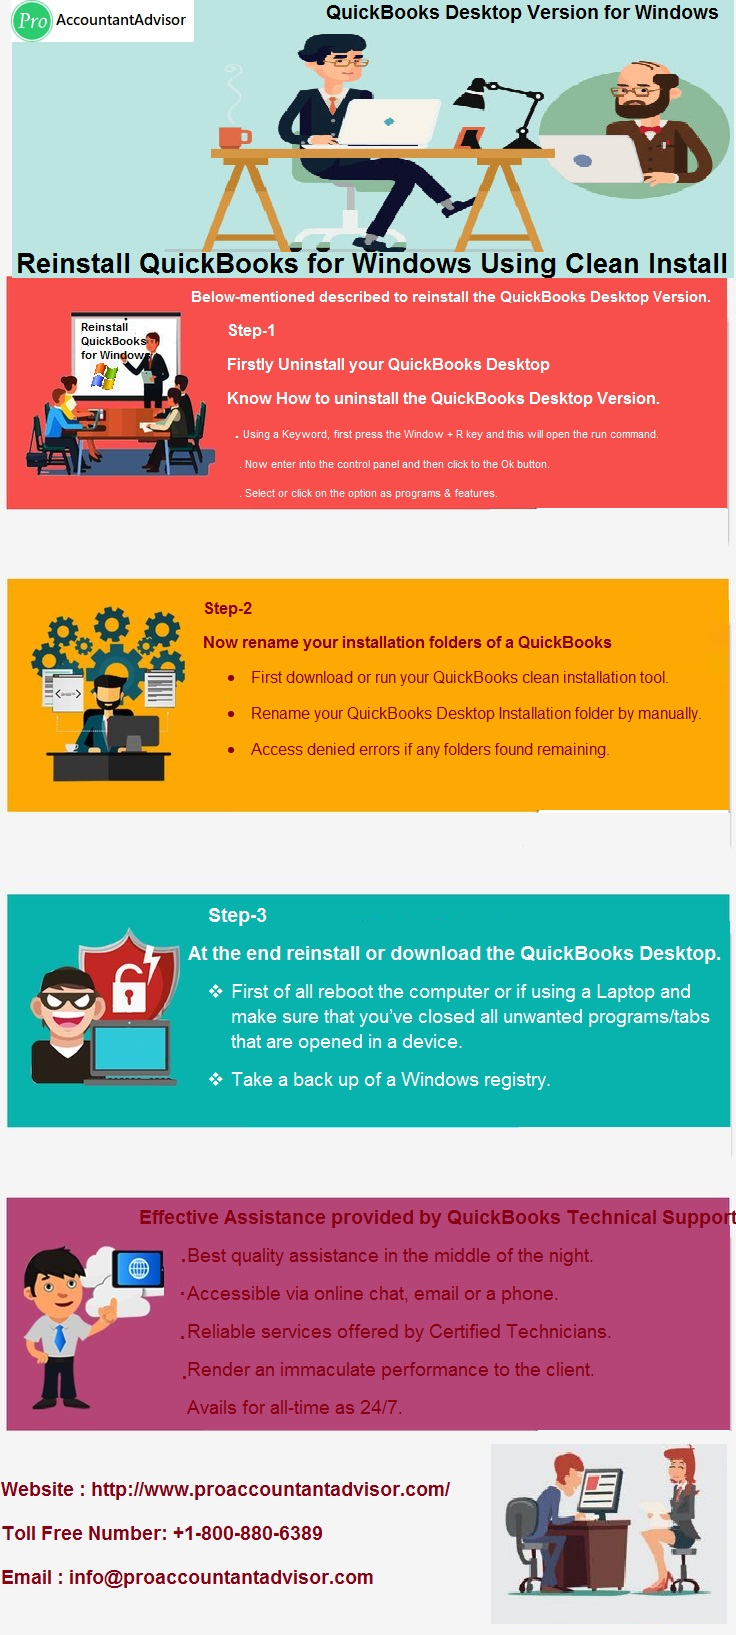 Reinstall QuickBooks for Windows Using Clean Install Infographic [Pro Accountant Advisor]